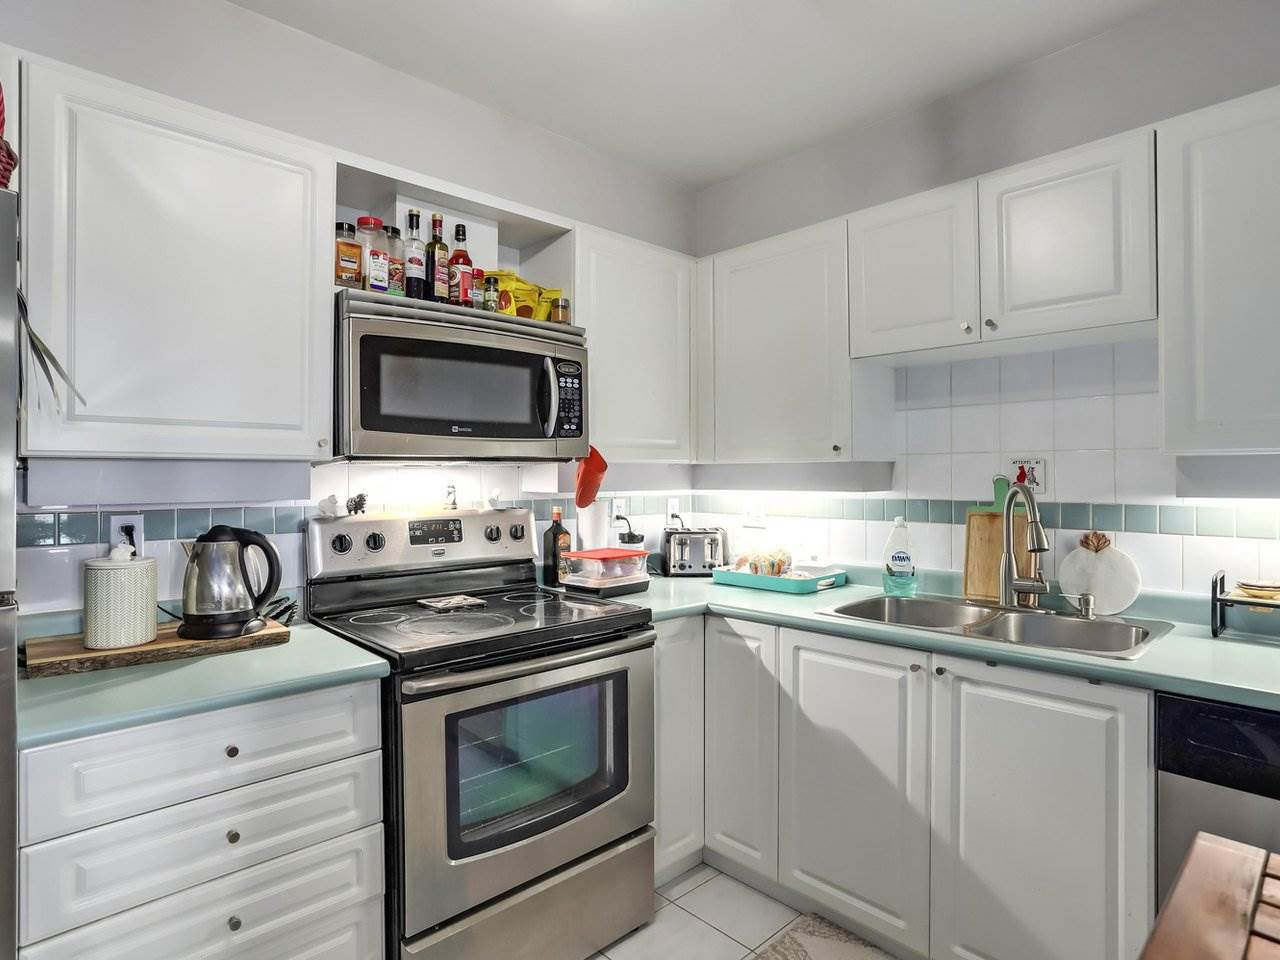 Photo 11: Photos: 107 295 SCHOOLHOUSE Street in Coquitlam: Maillardville Condo for sale : MLS®# R2286753